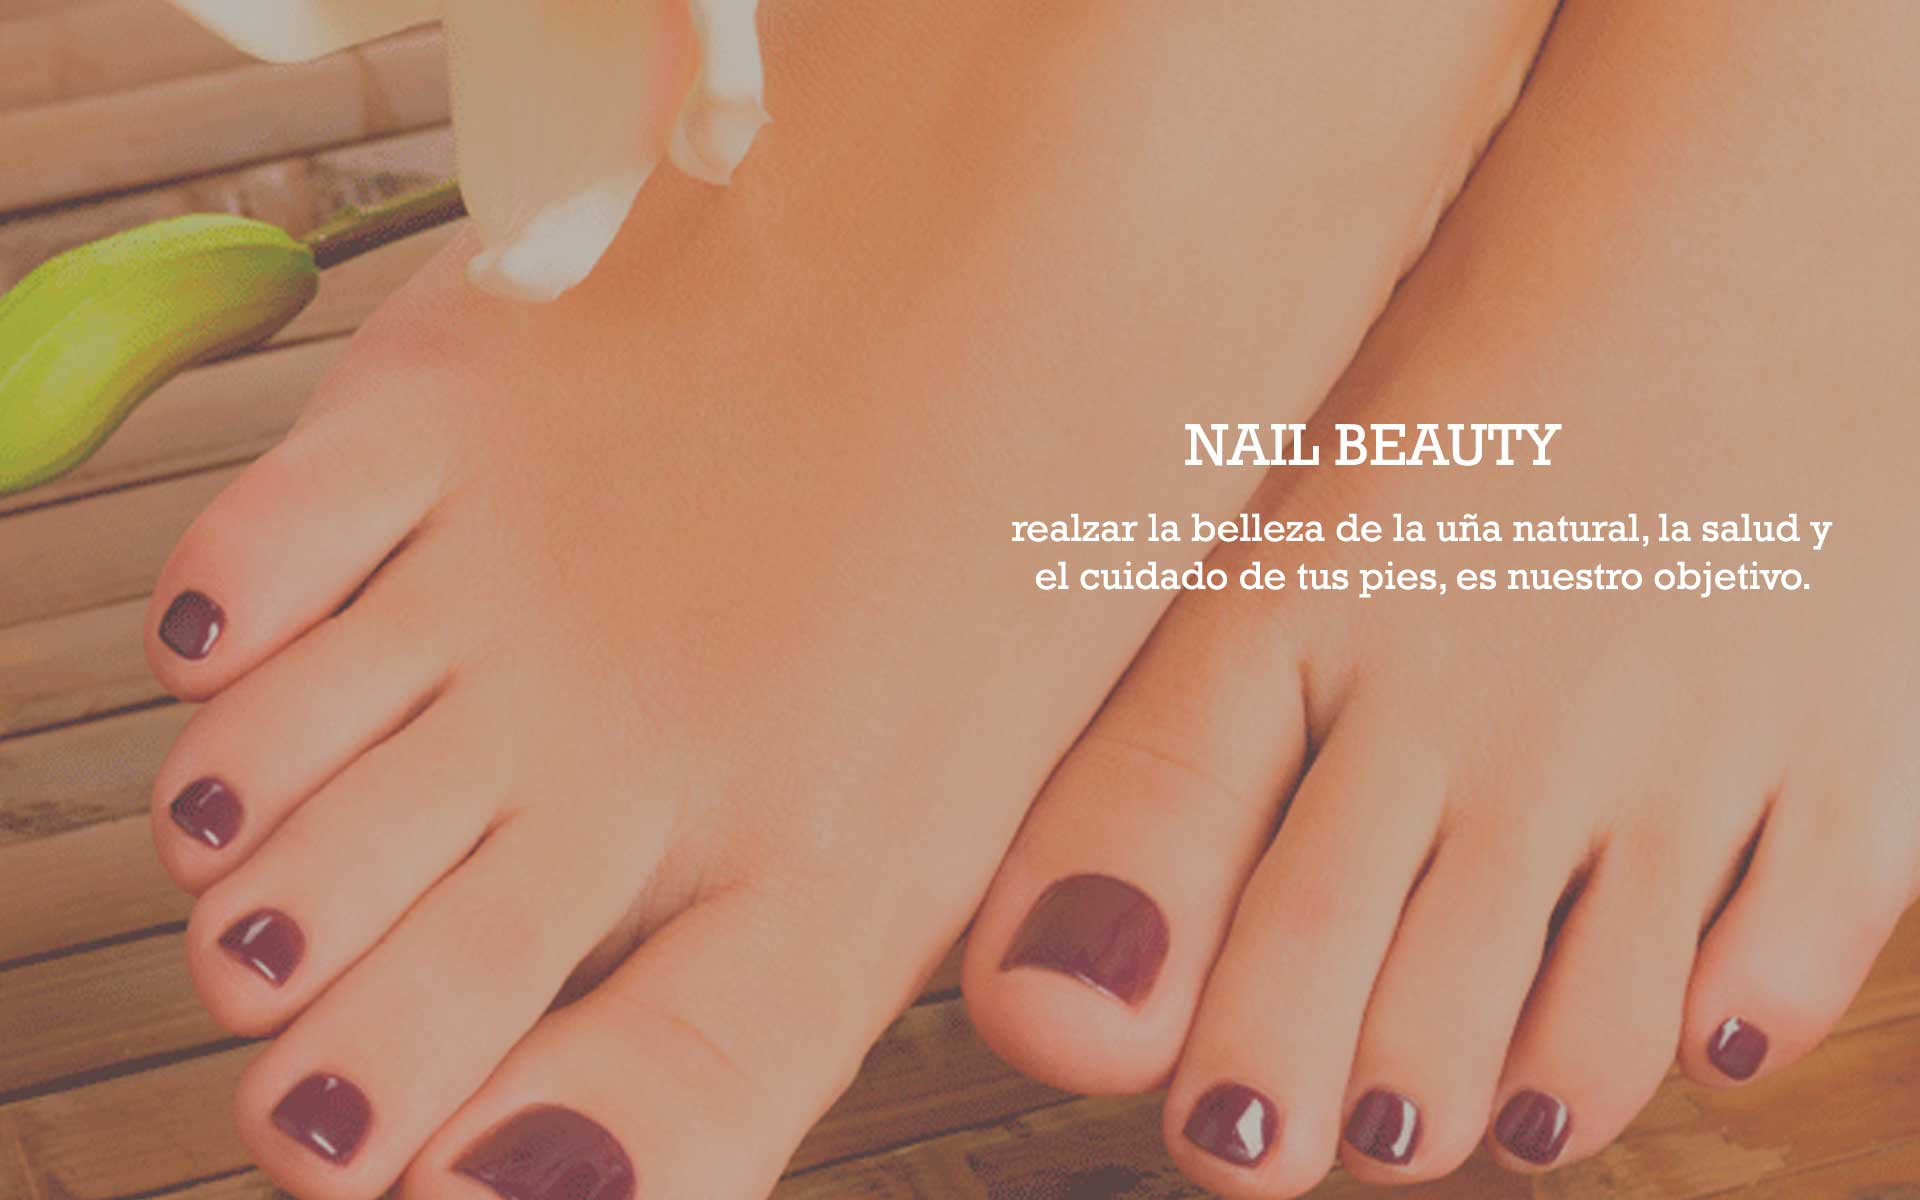 nail-beauty-esteticallanos